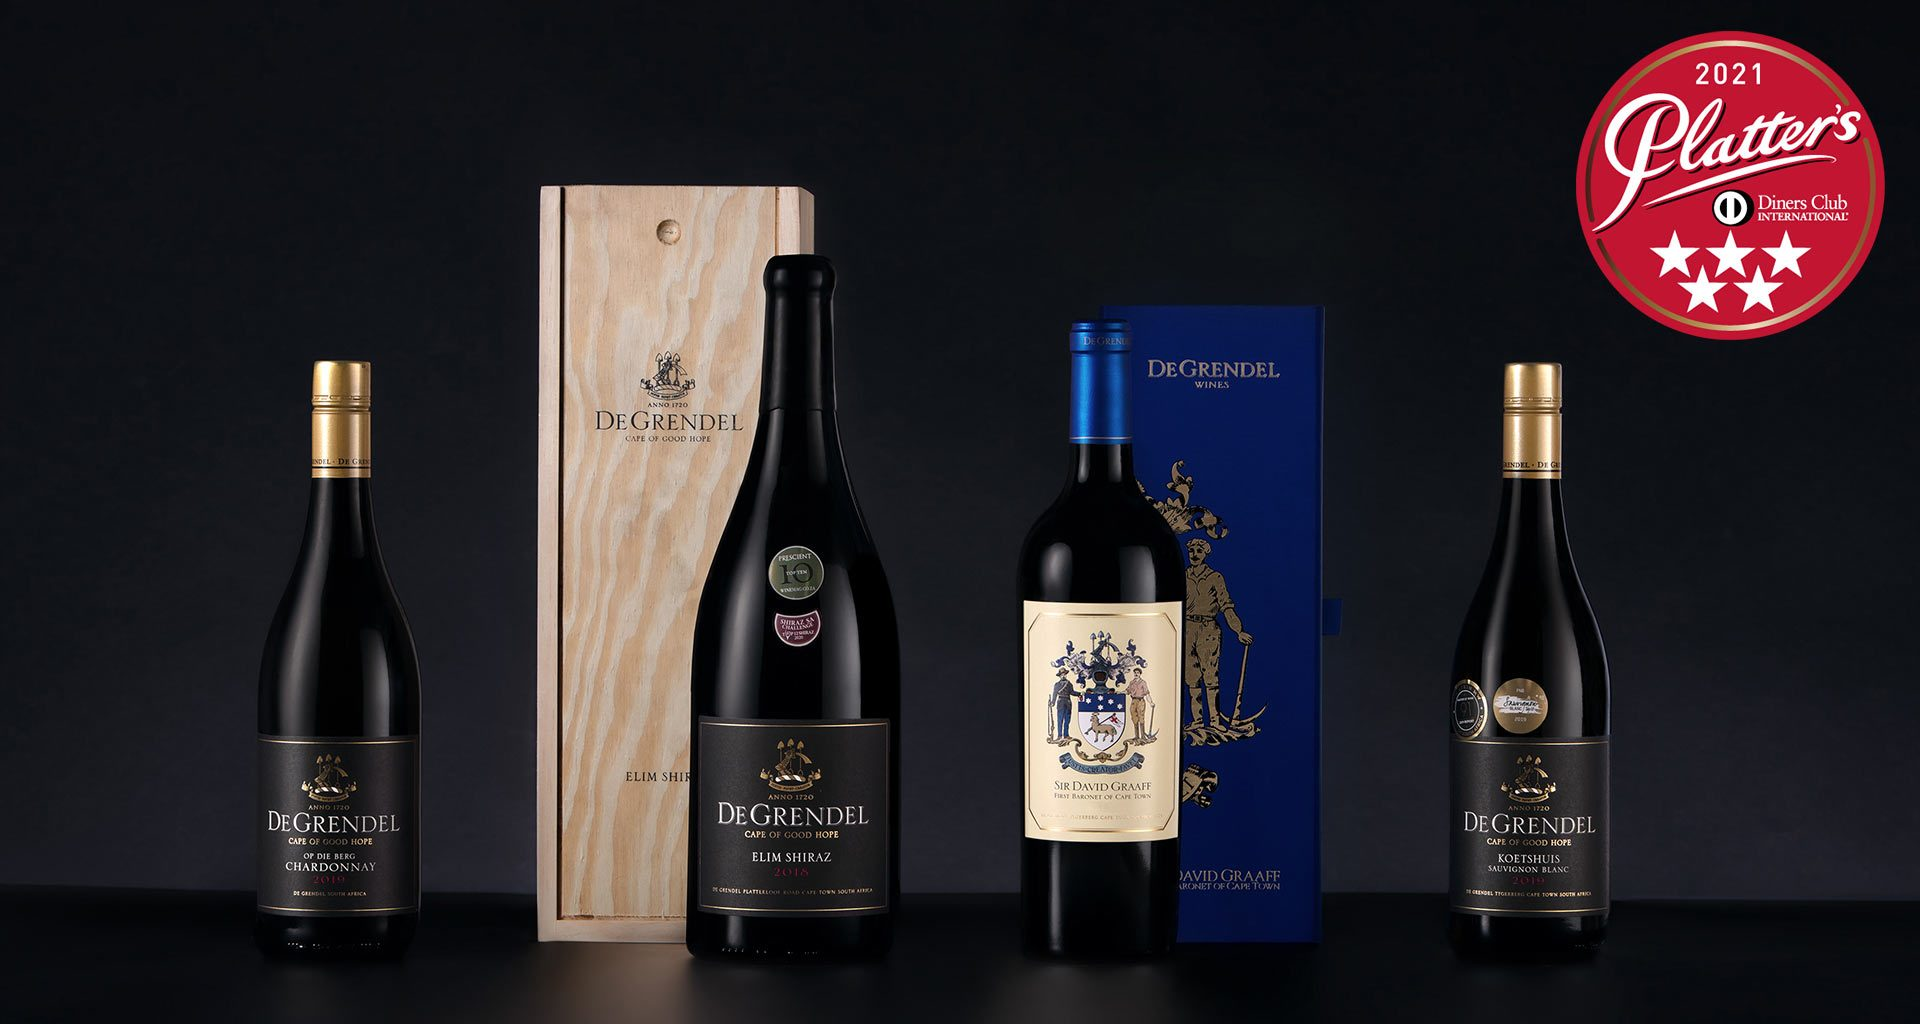 Ge Grendel 5 Star Wines available from L=K and L Wines